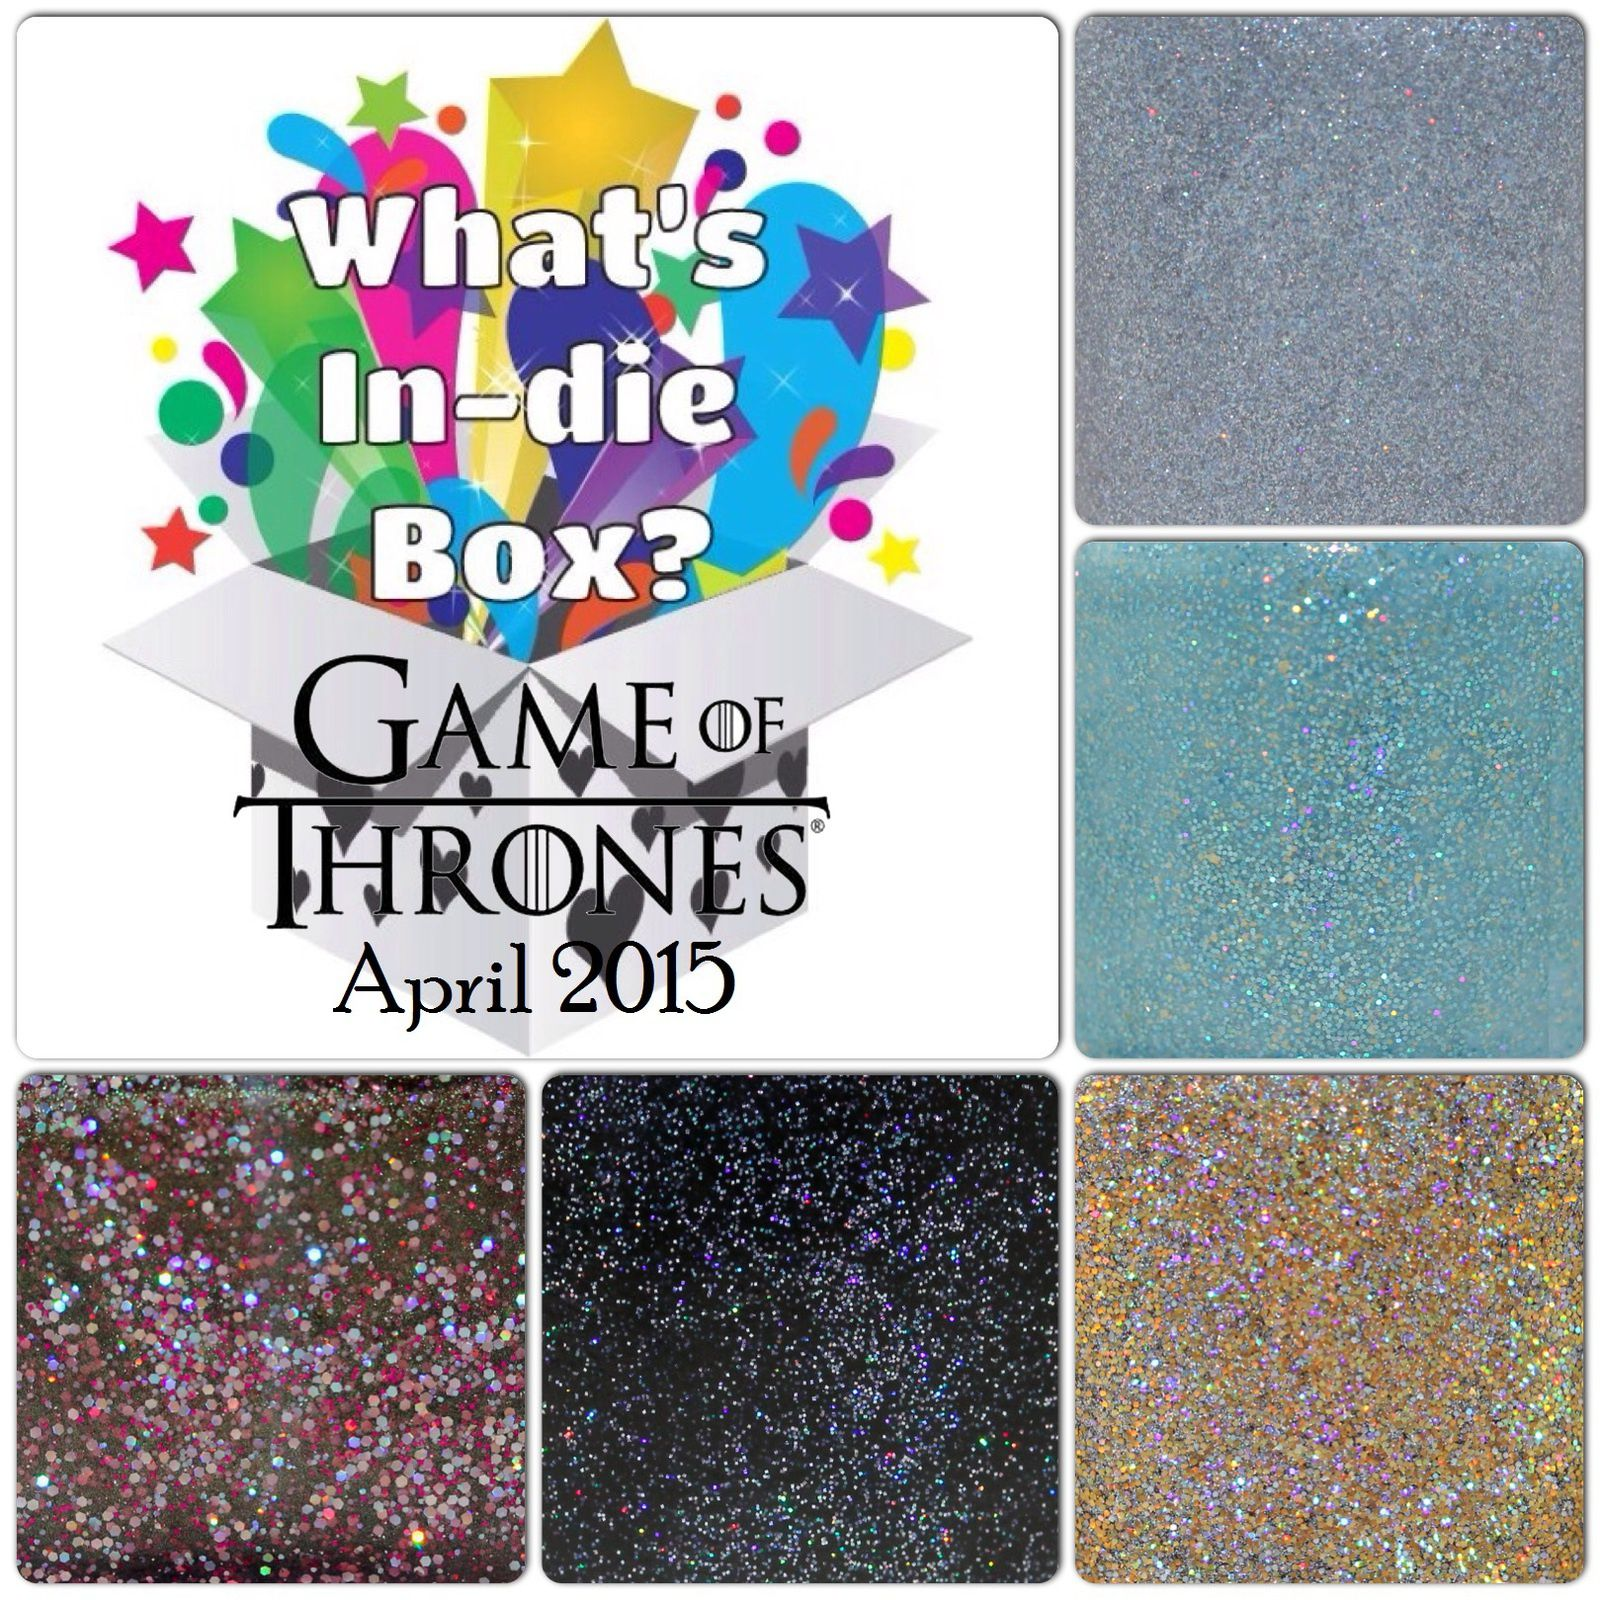 What's Indie Box - April 2015 - Game of Thrones